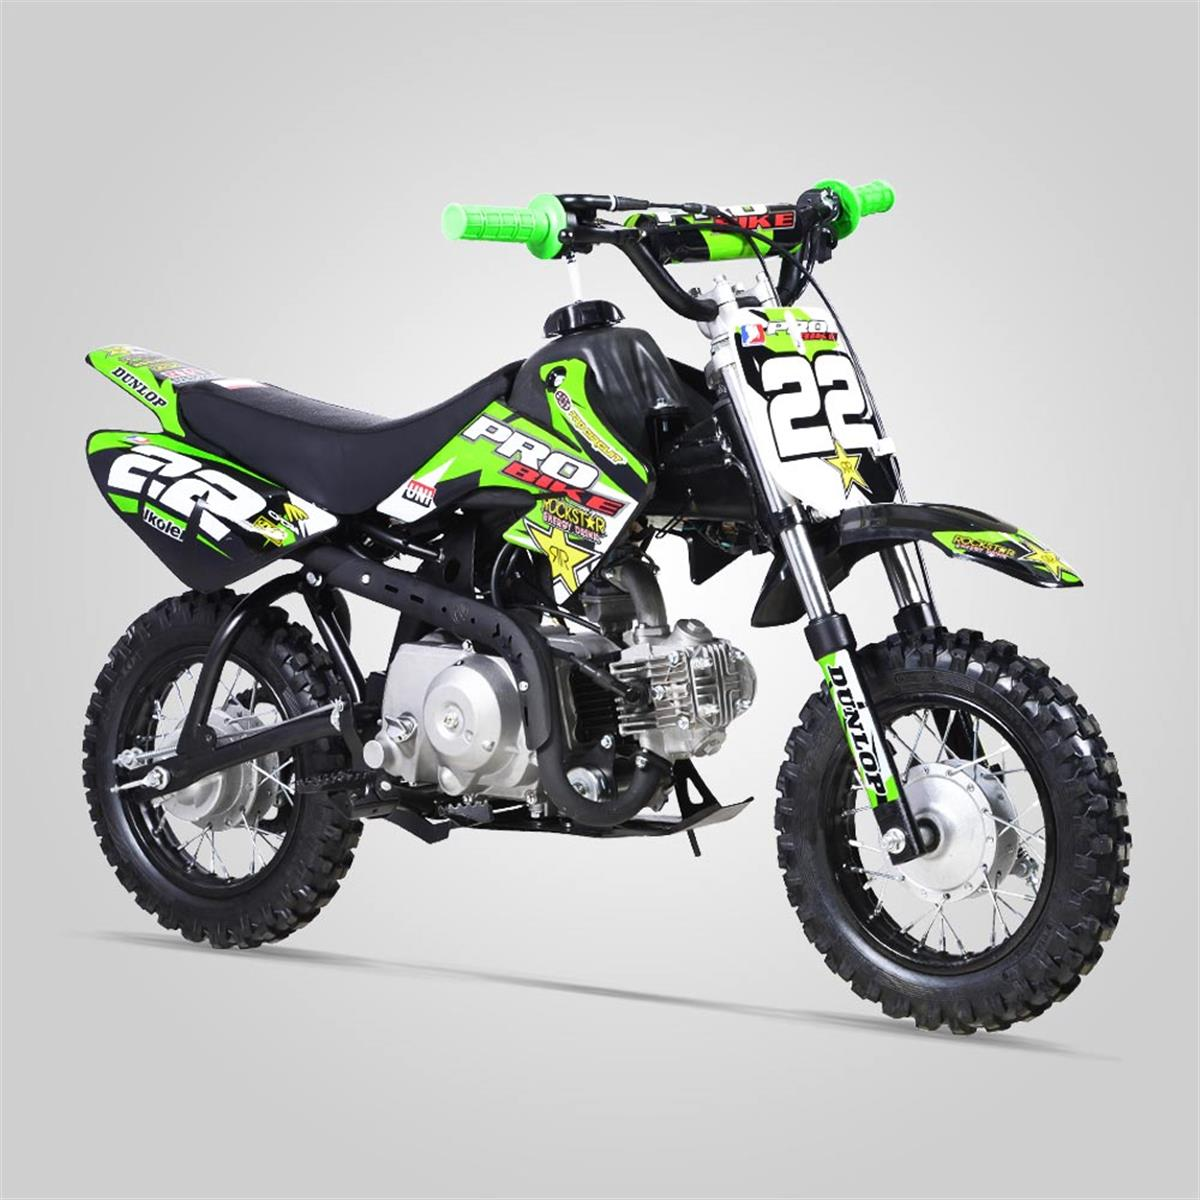 dirt bike 50cc probike 2017 smallmx dirt bike pit bike quads minimoto. Black Bedroom Furniture Sets. Home Design Ideas